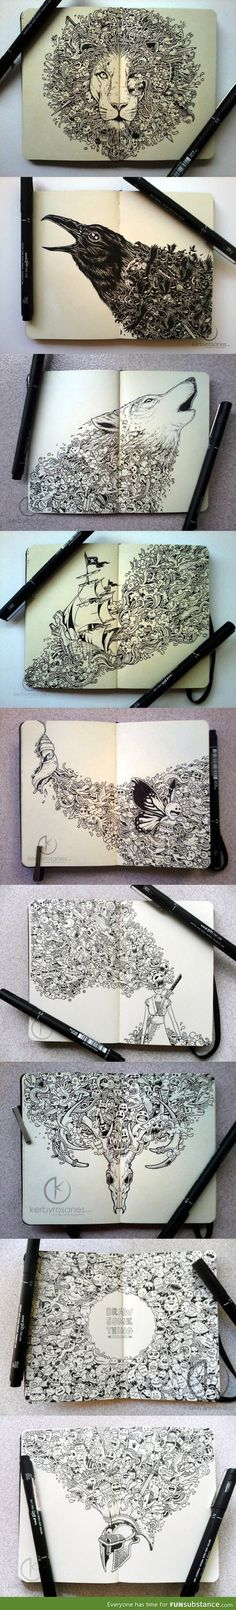 Incredible moleskine drawings by Kerby Rosanes. More treats at the link. - TRULY AMAZING SKETCHWORK! Inspirational